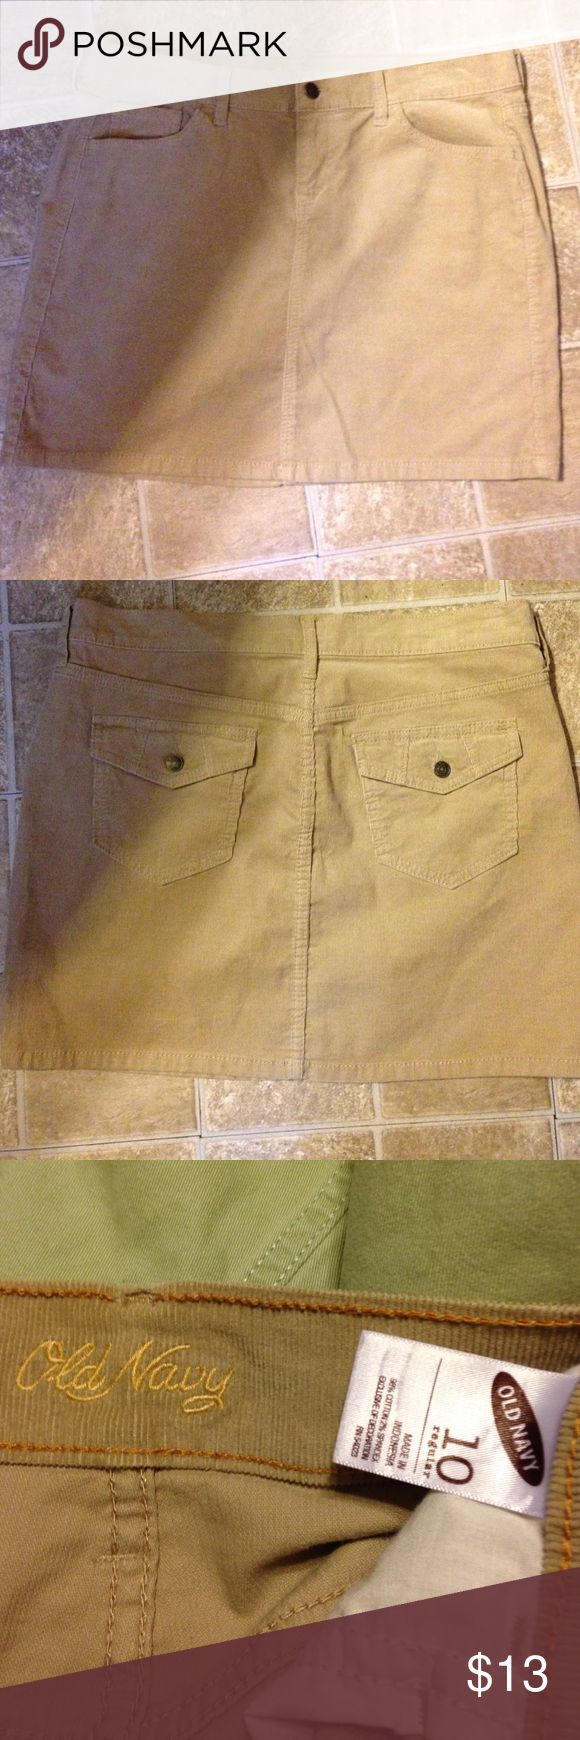 Old Navy like new corduroy skirt. Sz 10.  Cute!!!! Old Navy like new corduroy skirt. Sz 10.  Cute!!!! Old Navy Skirts